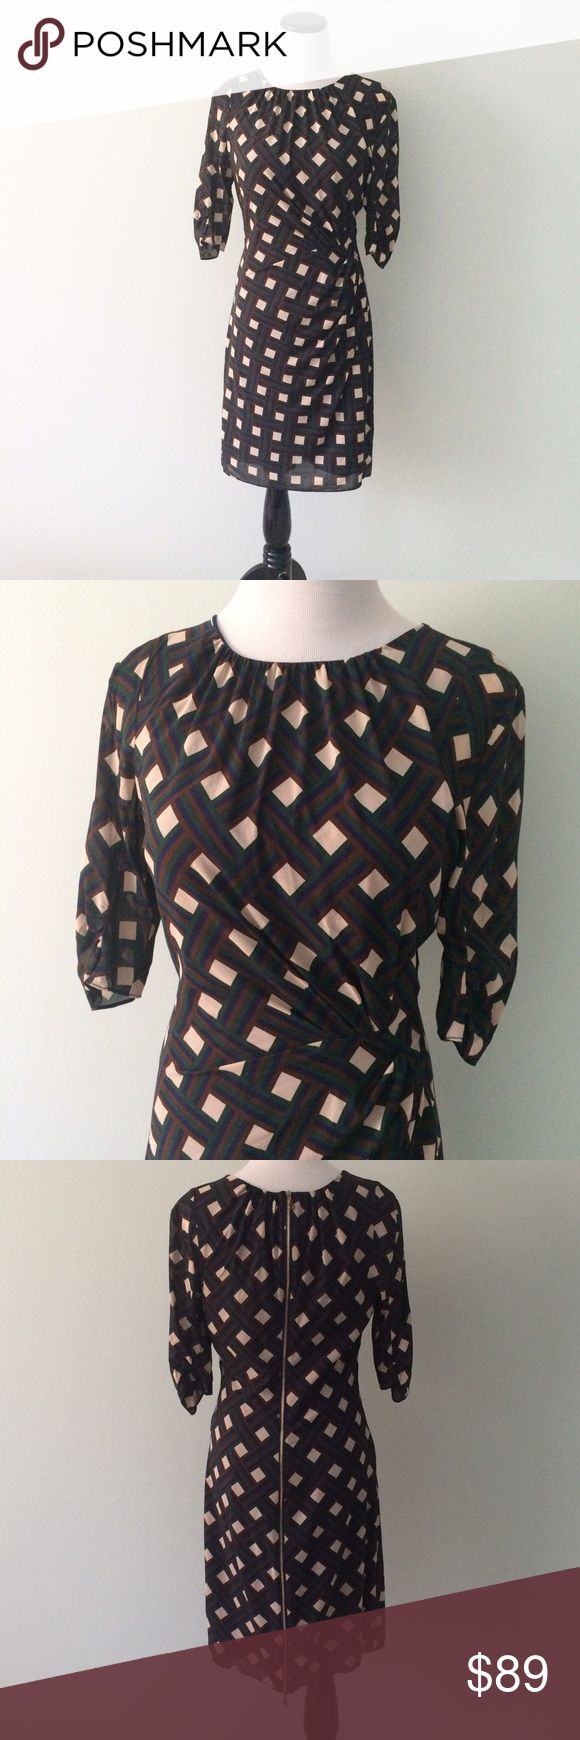 """WHISTLES Silk navy cream Geometric Dress High-end UK brand. Beautiful 85% silk and 15% elastane dress. Gently worn once. Navy blue, cream, brown and green. Full zipper on back of dress. Can be zipped from top or bottom. Ruched on side of waist. Fully lined. Length 36"""".  Chest 17.5"""". Whistles Dresses"""